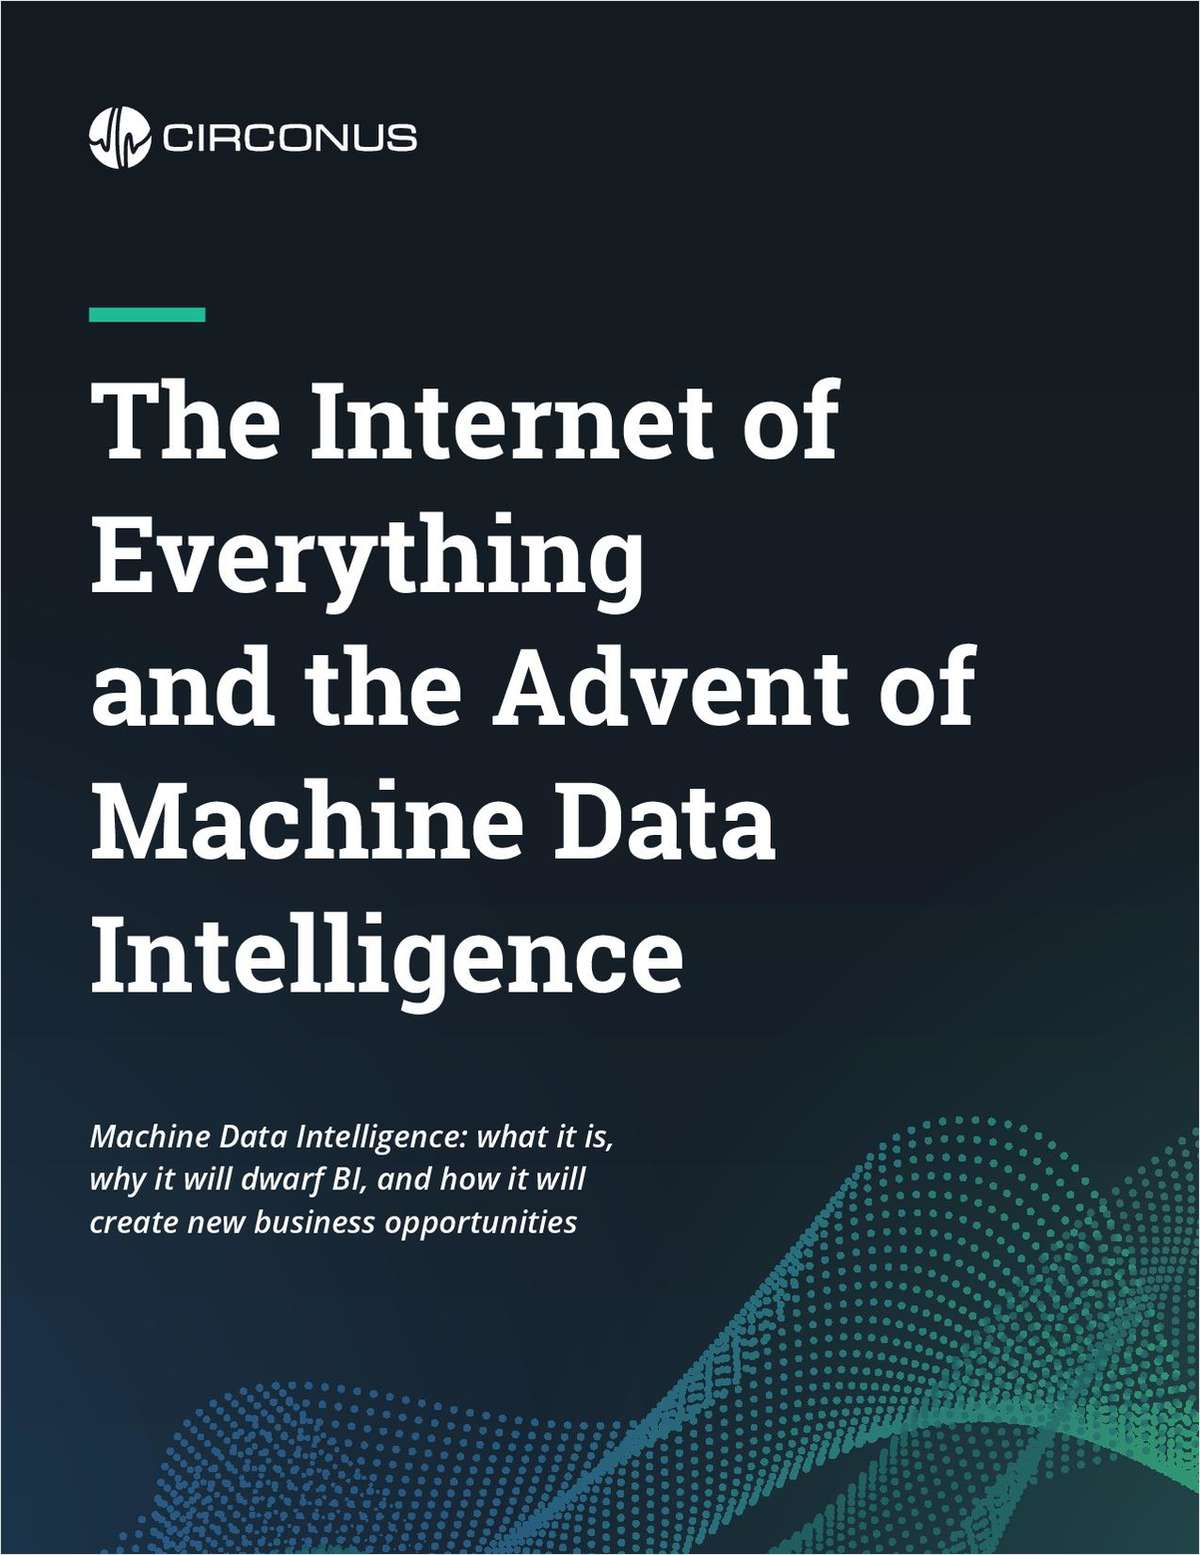 The Internet of Everything and the Advent of Machine Data Intelligence